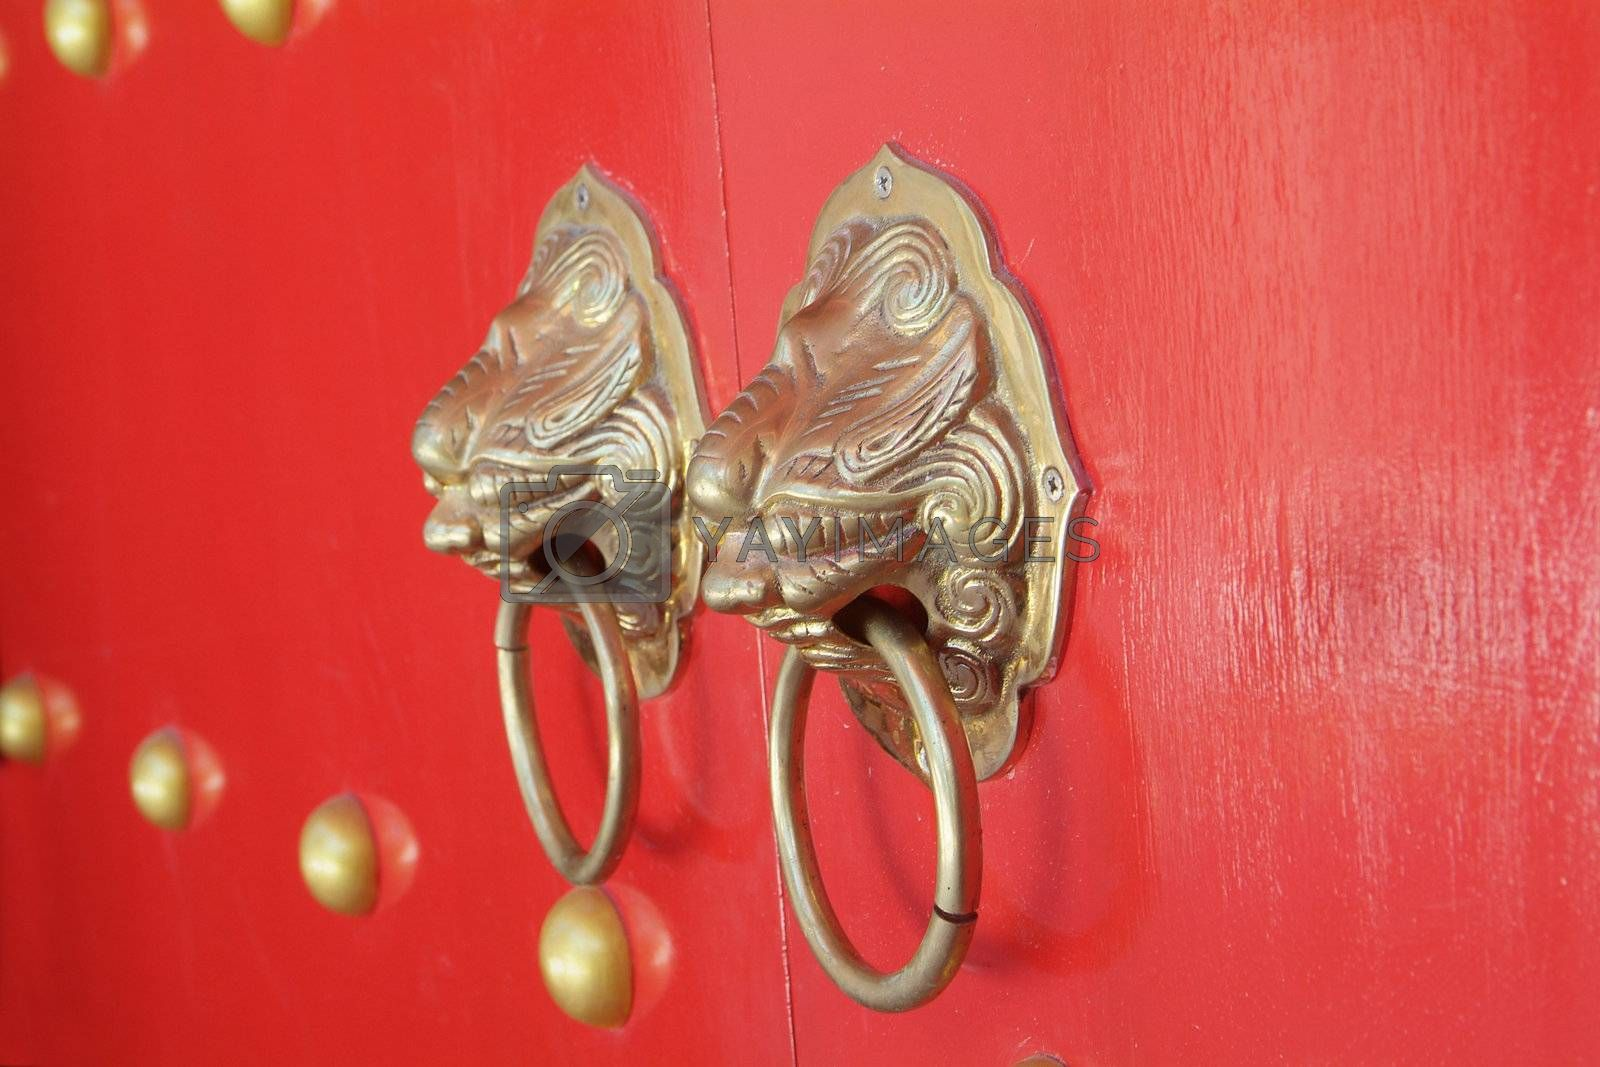 Royalty free image of Door handles at Chinese temple by epixx